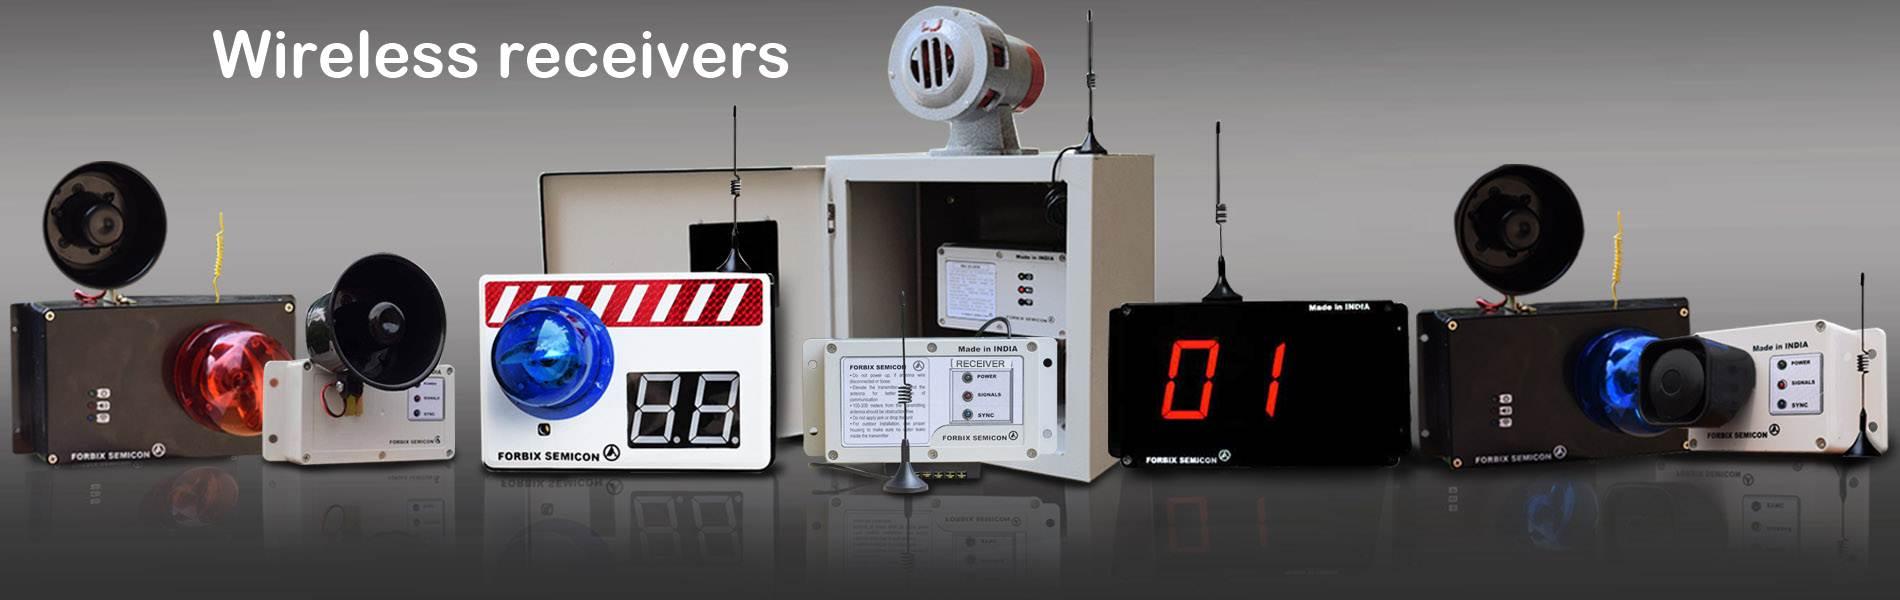 wireless receiver alarms and sirens